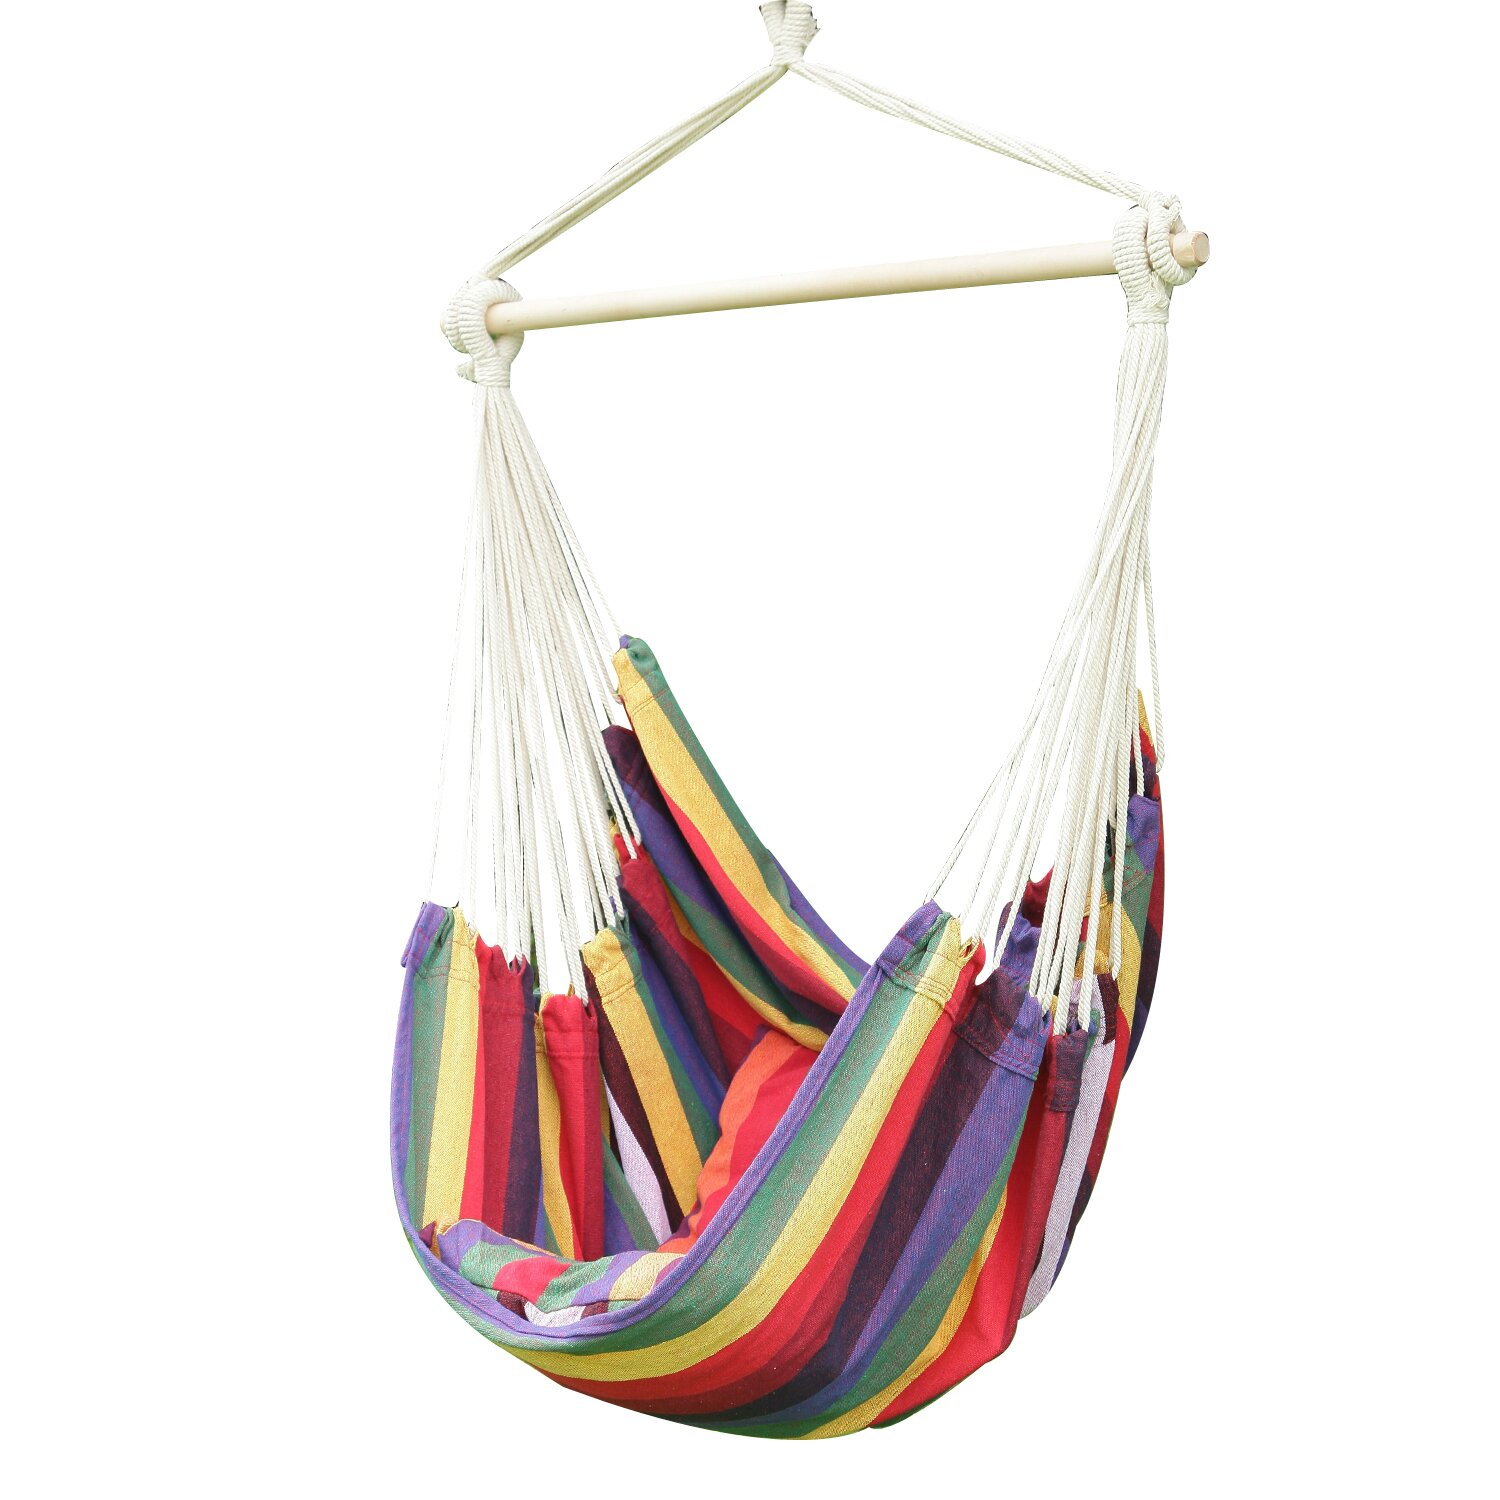 AdecoTrading Tree Hanging Suspended Indoor Outdoor Hammock